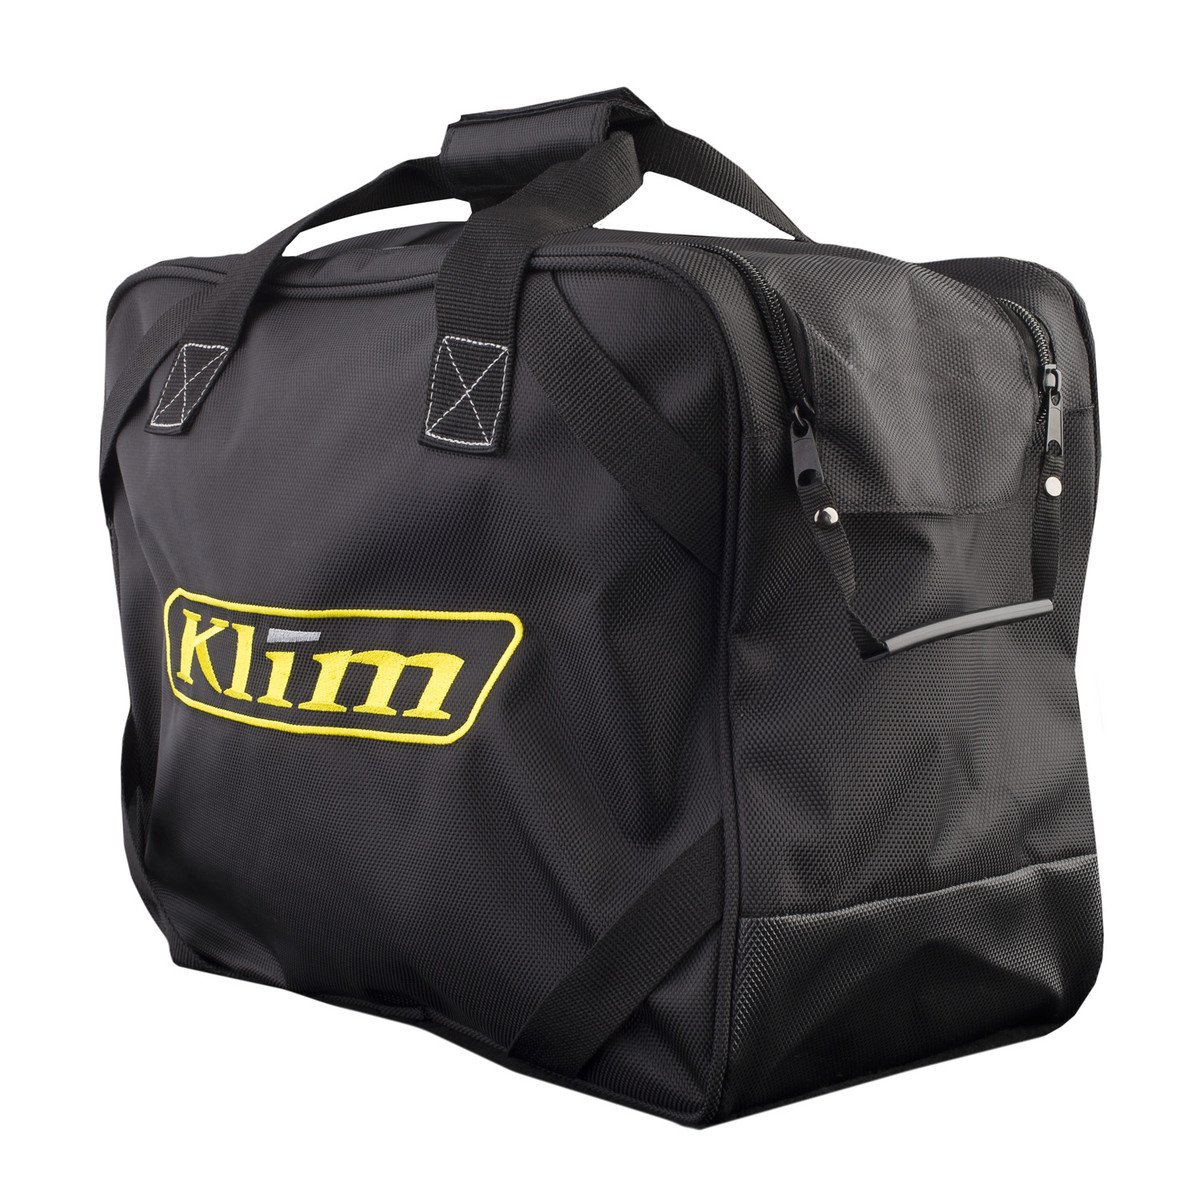 Klim Helmet Bag Motorcycle Helmet Accessories - Black One Size by KLIM